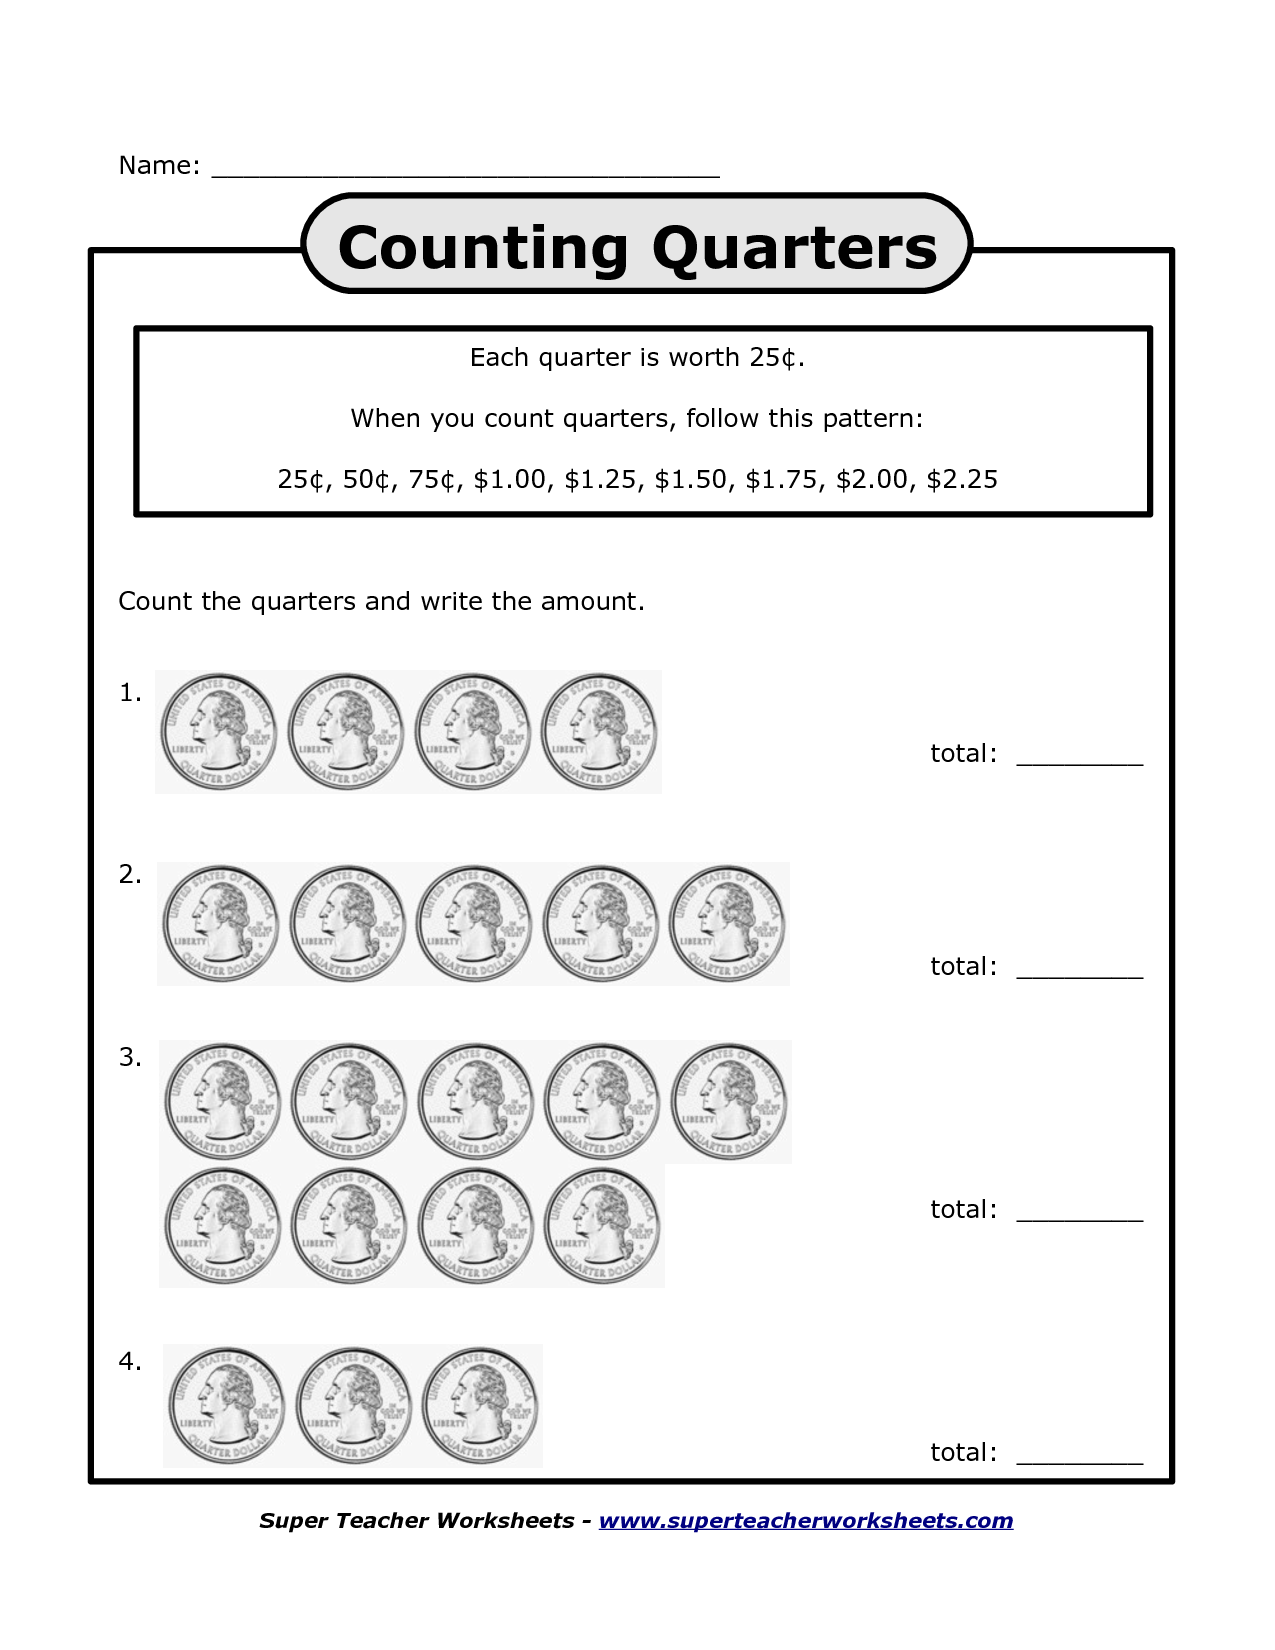 hight resolution of Counting Quarters Worksheets - Bing Images   Super teacher worksheets